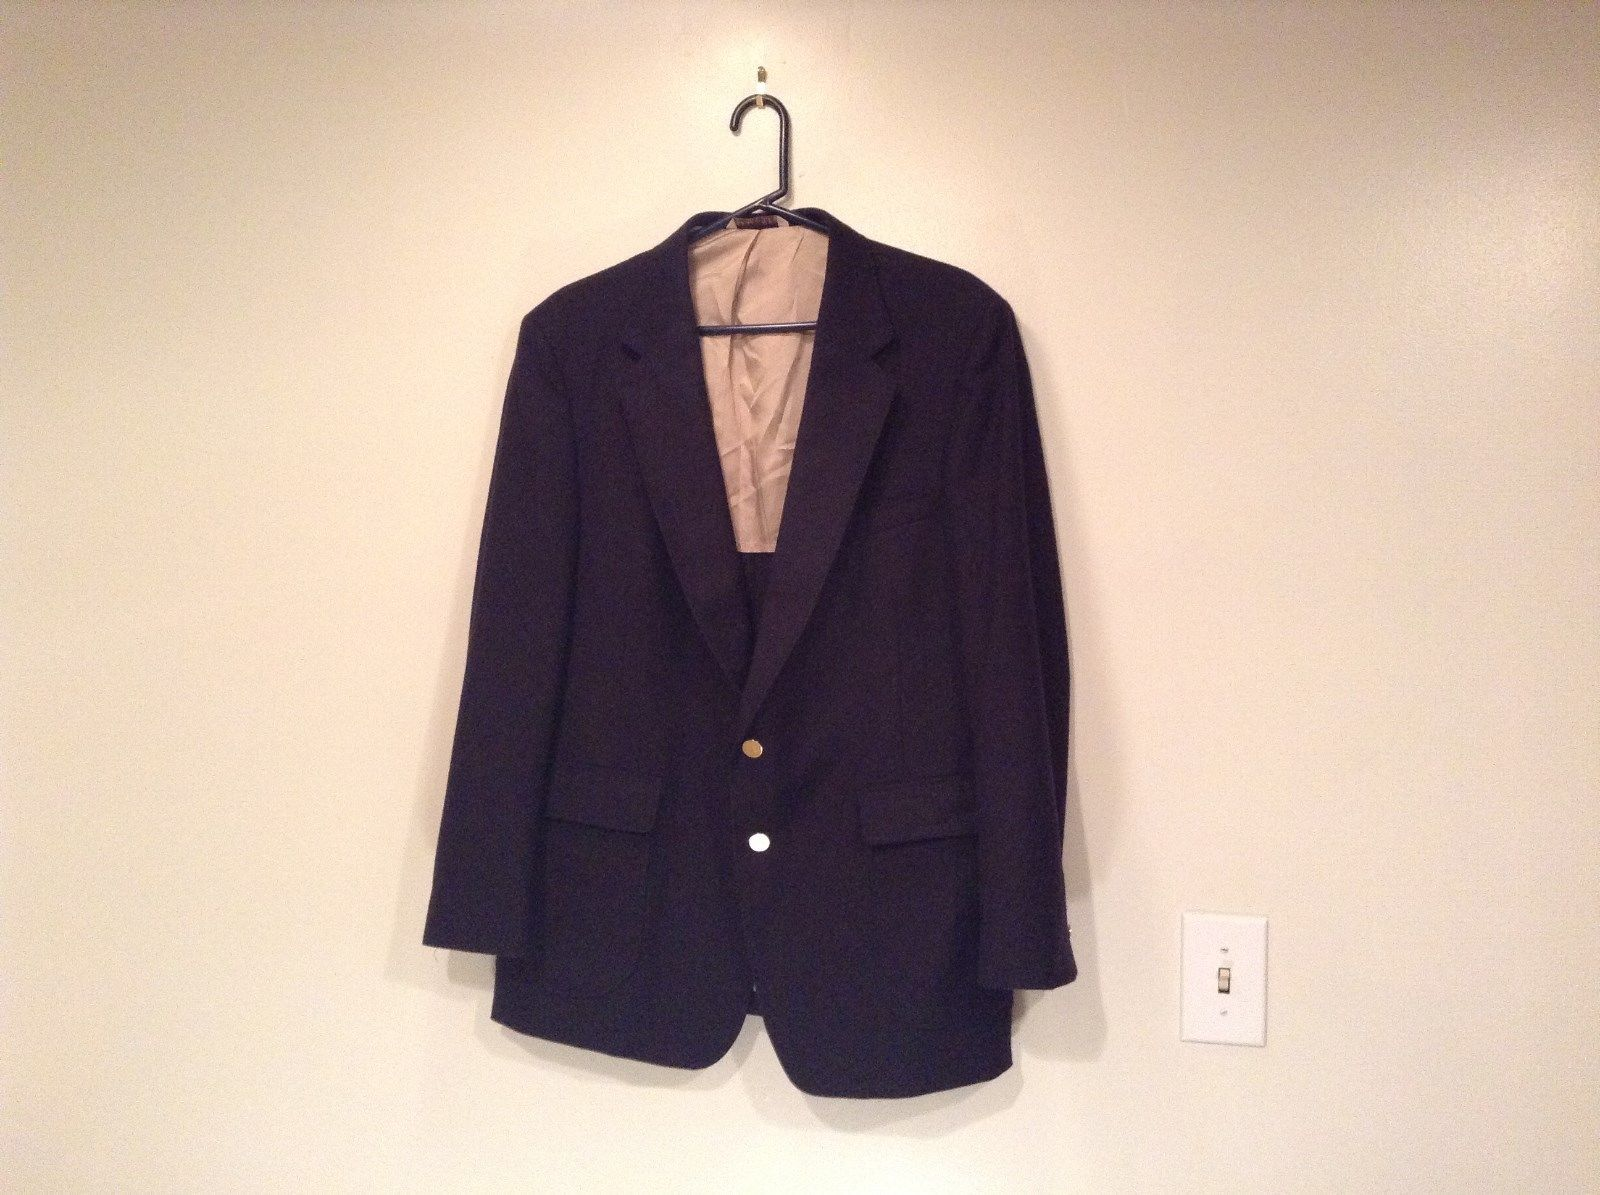 London Fog Size 44R Dark Blue Black 100 Percent Wool Suit Jacket Blazer